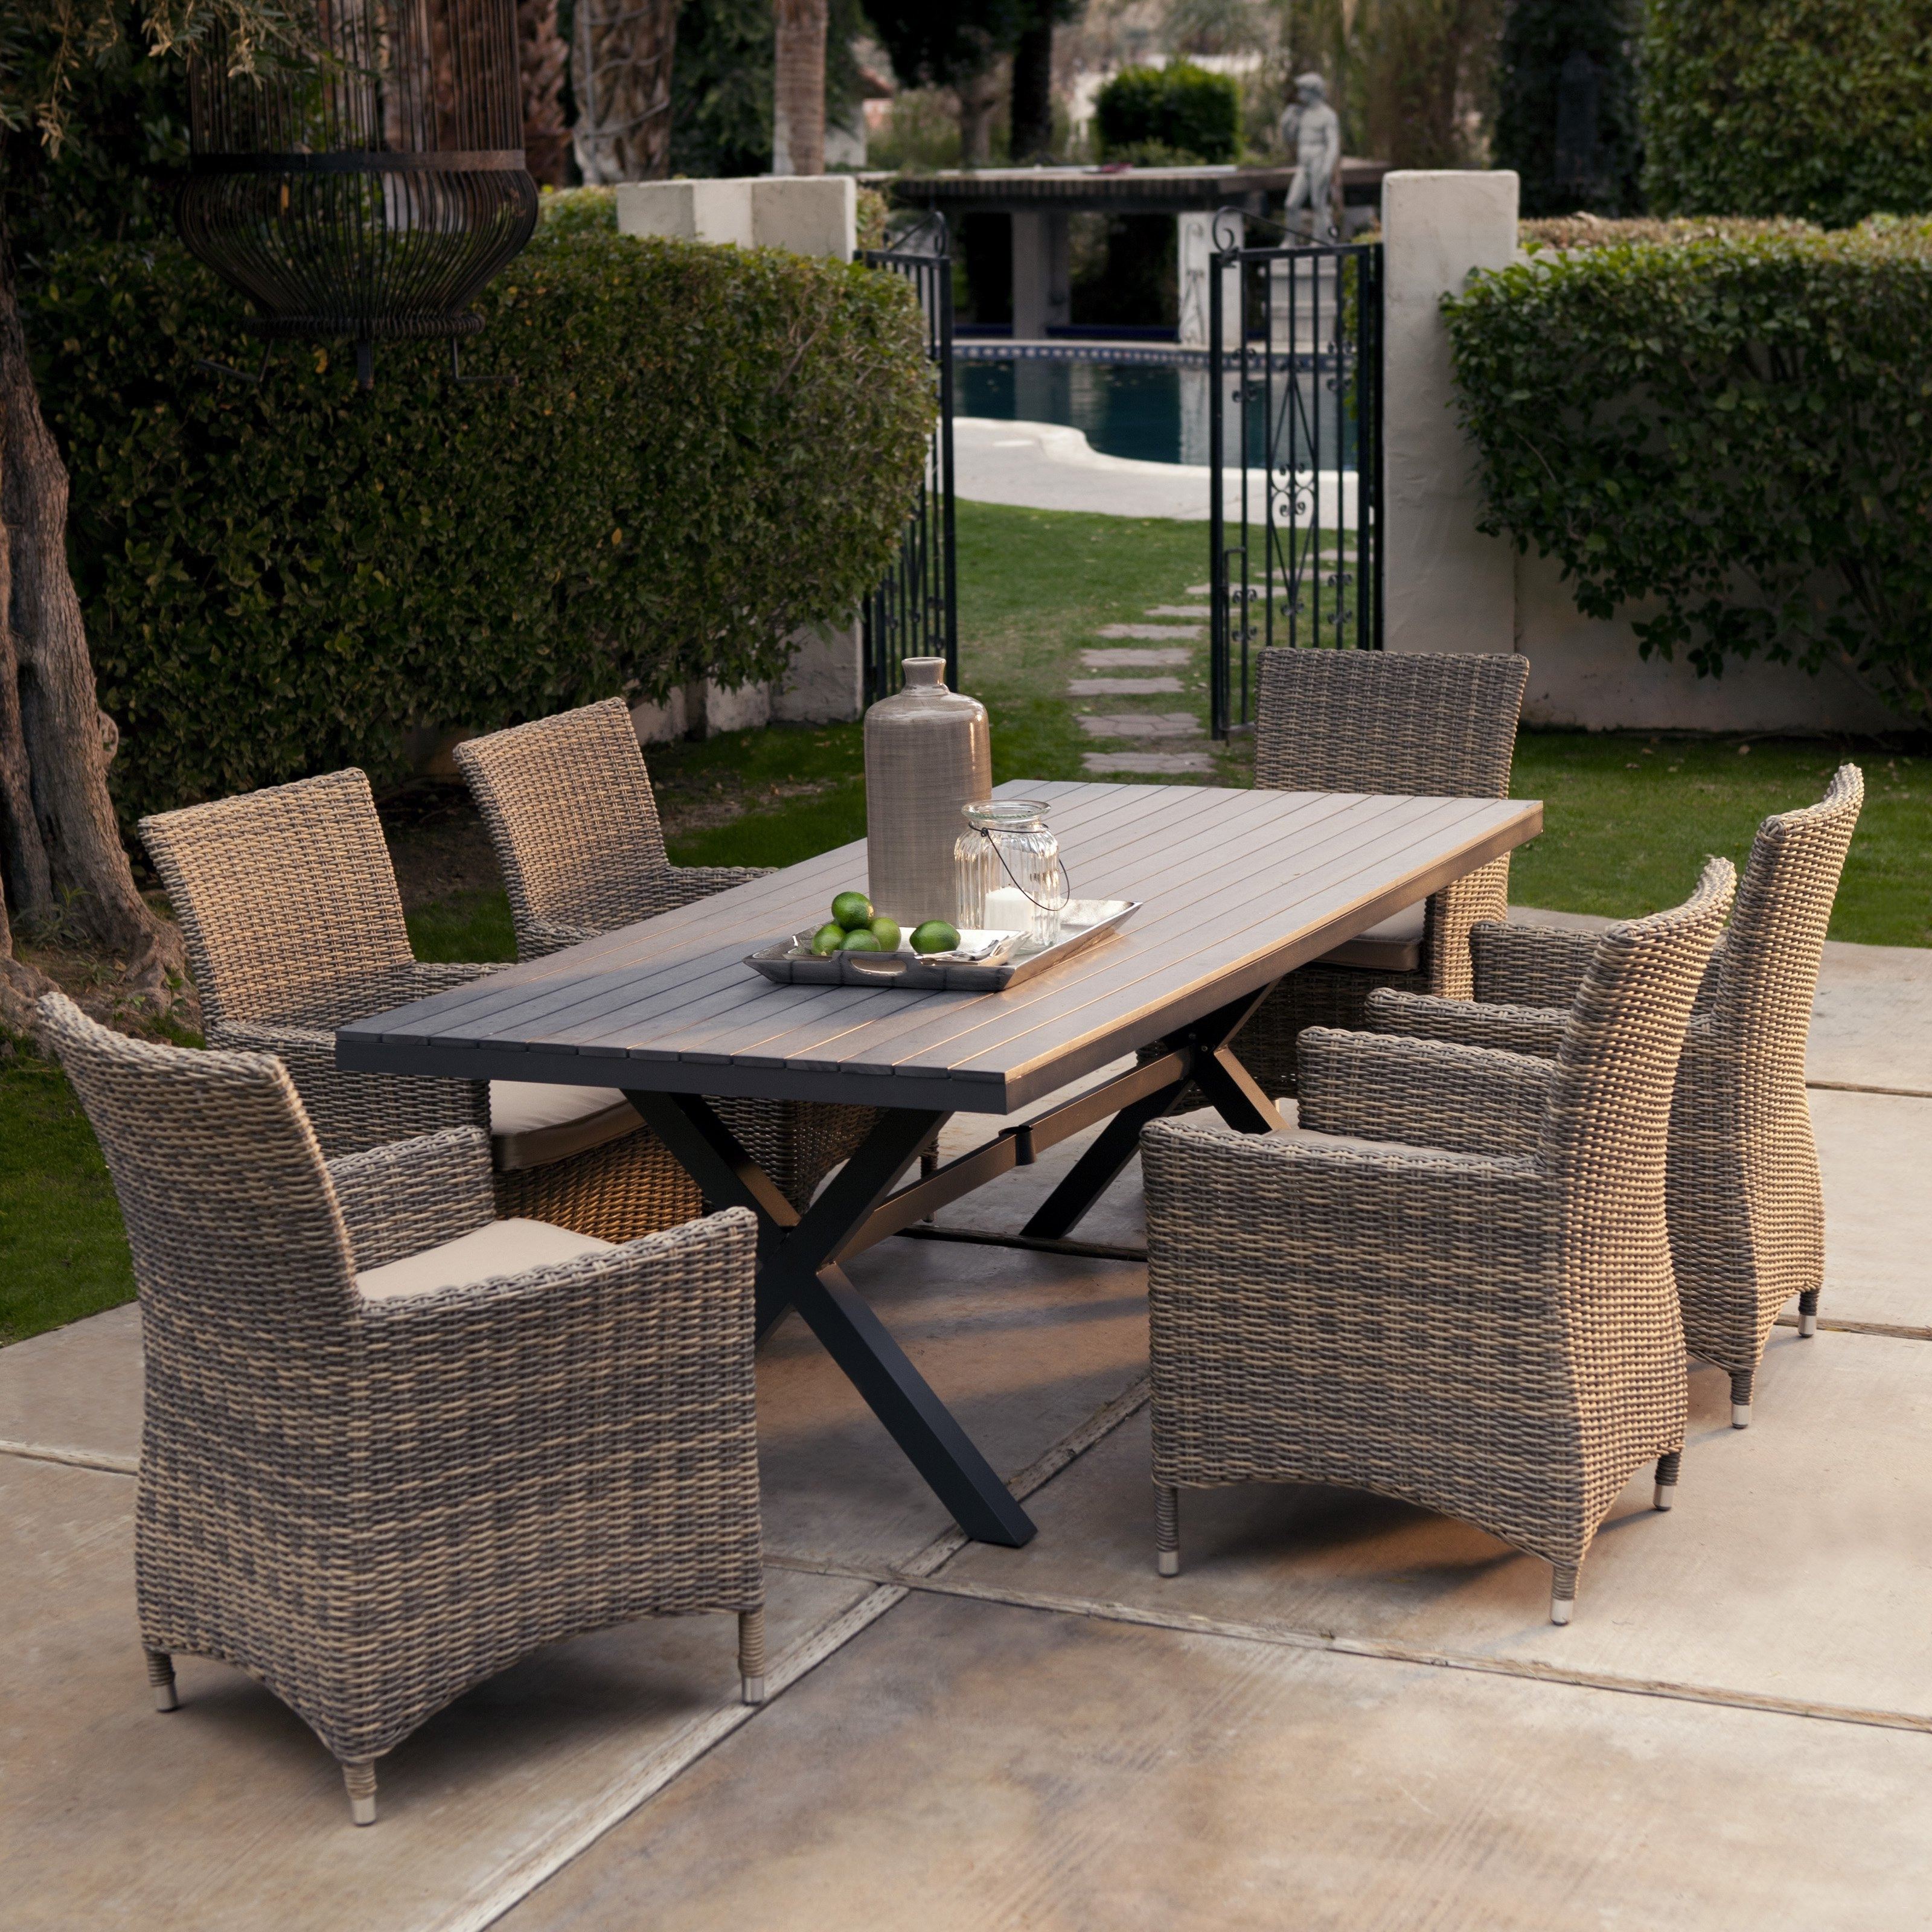 Outdoor Dining Sets With Swivel Chairs Elegant Chair Outdoor Patio Pertaining To Well Liked Patio Conversation Sets With Swivel Chairs (View 11 of 20)